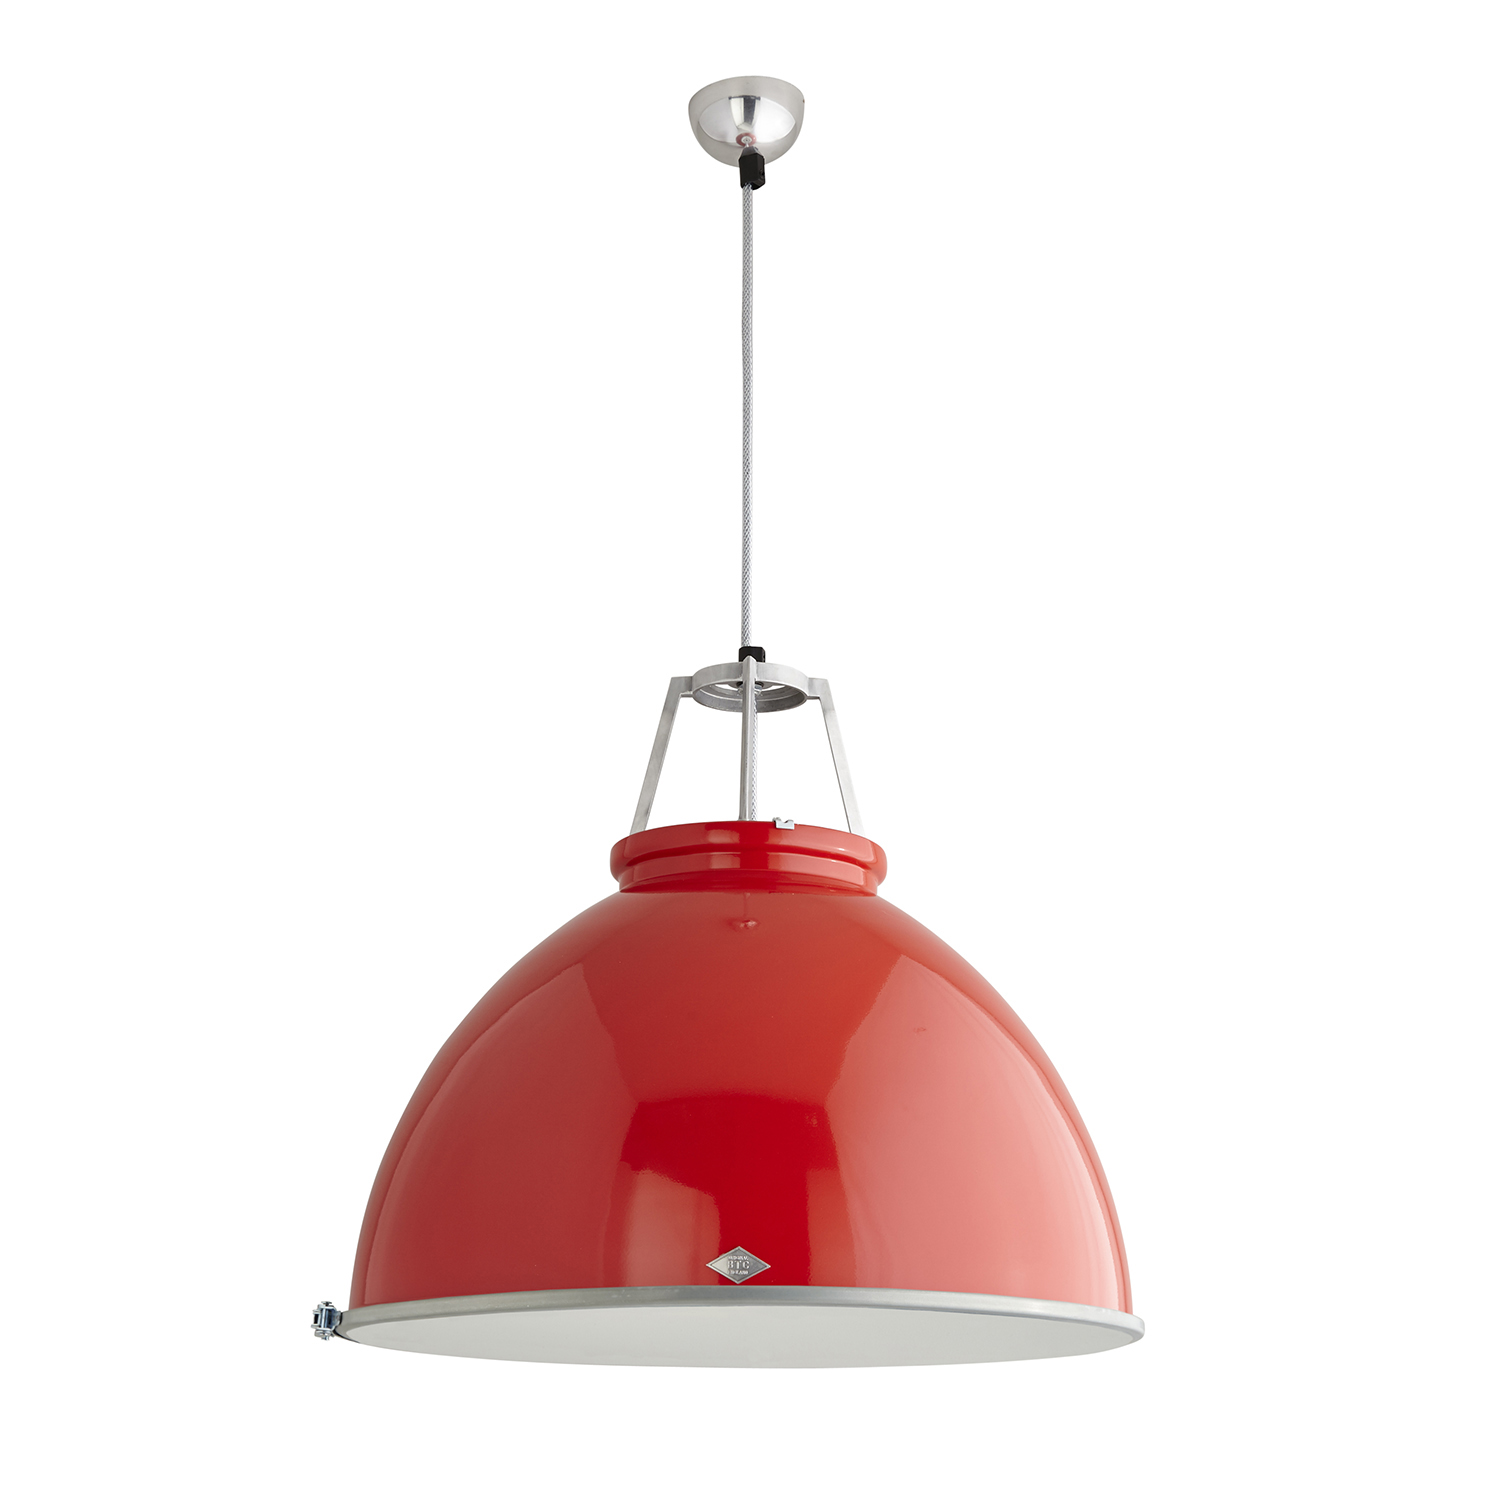 Titan Size 5 Pendant Light, Red with Etched Glass